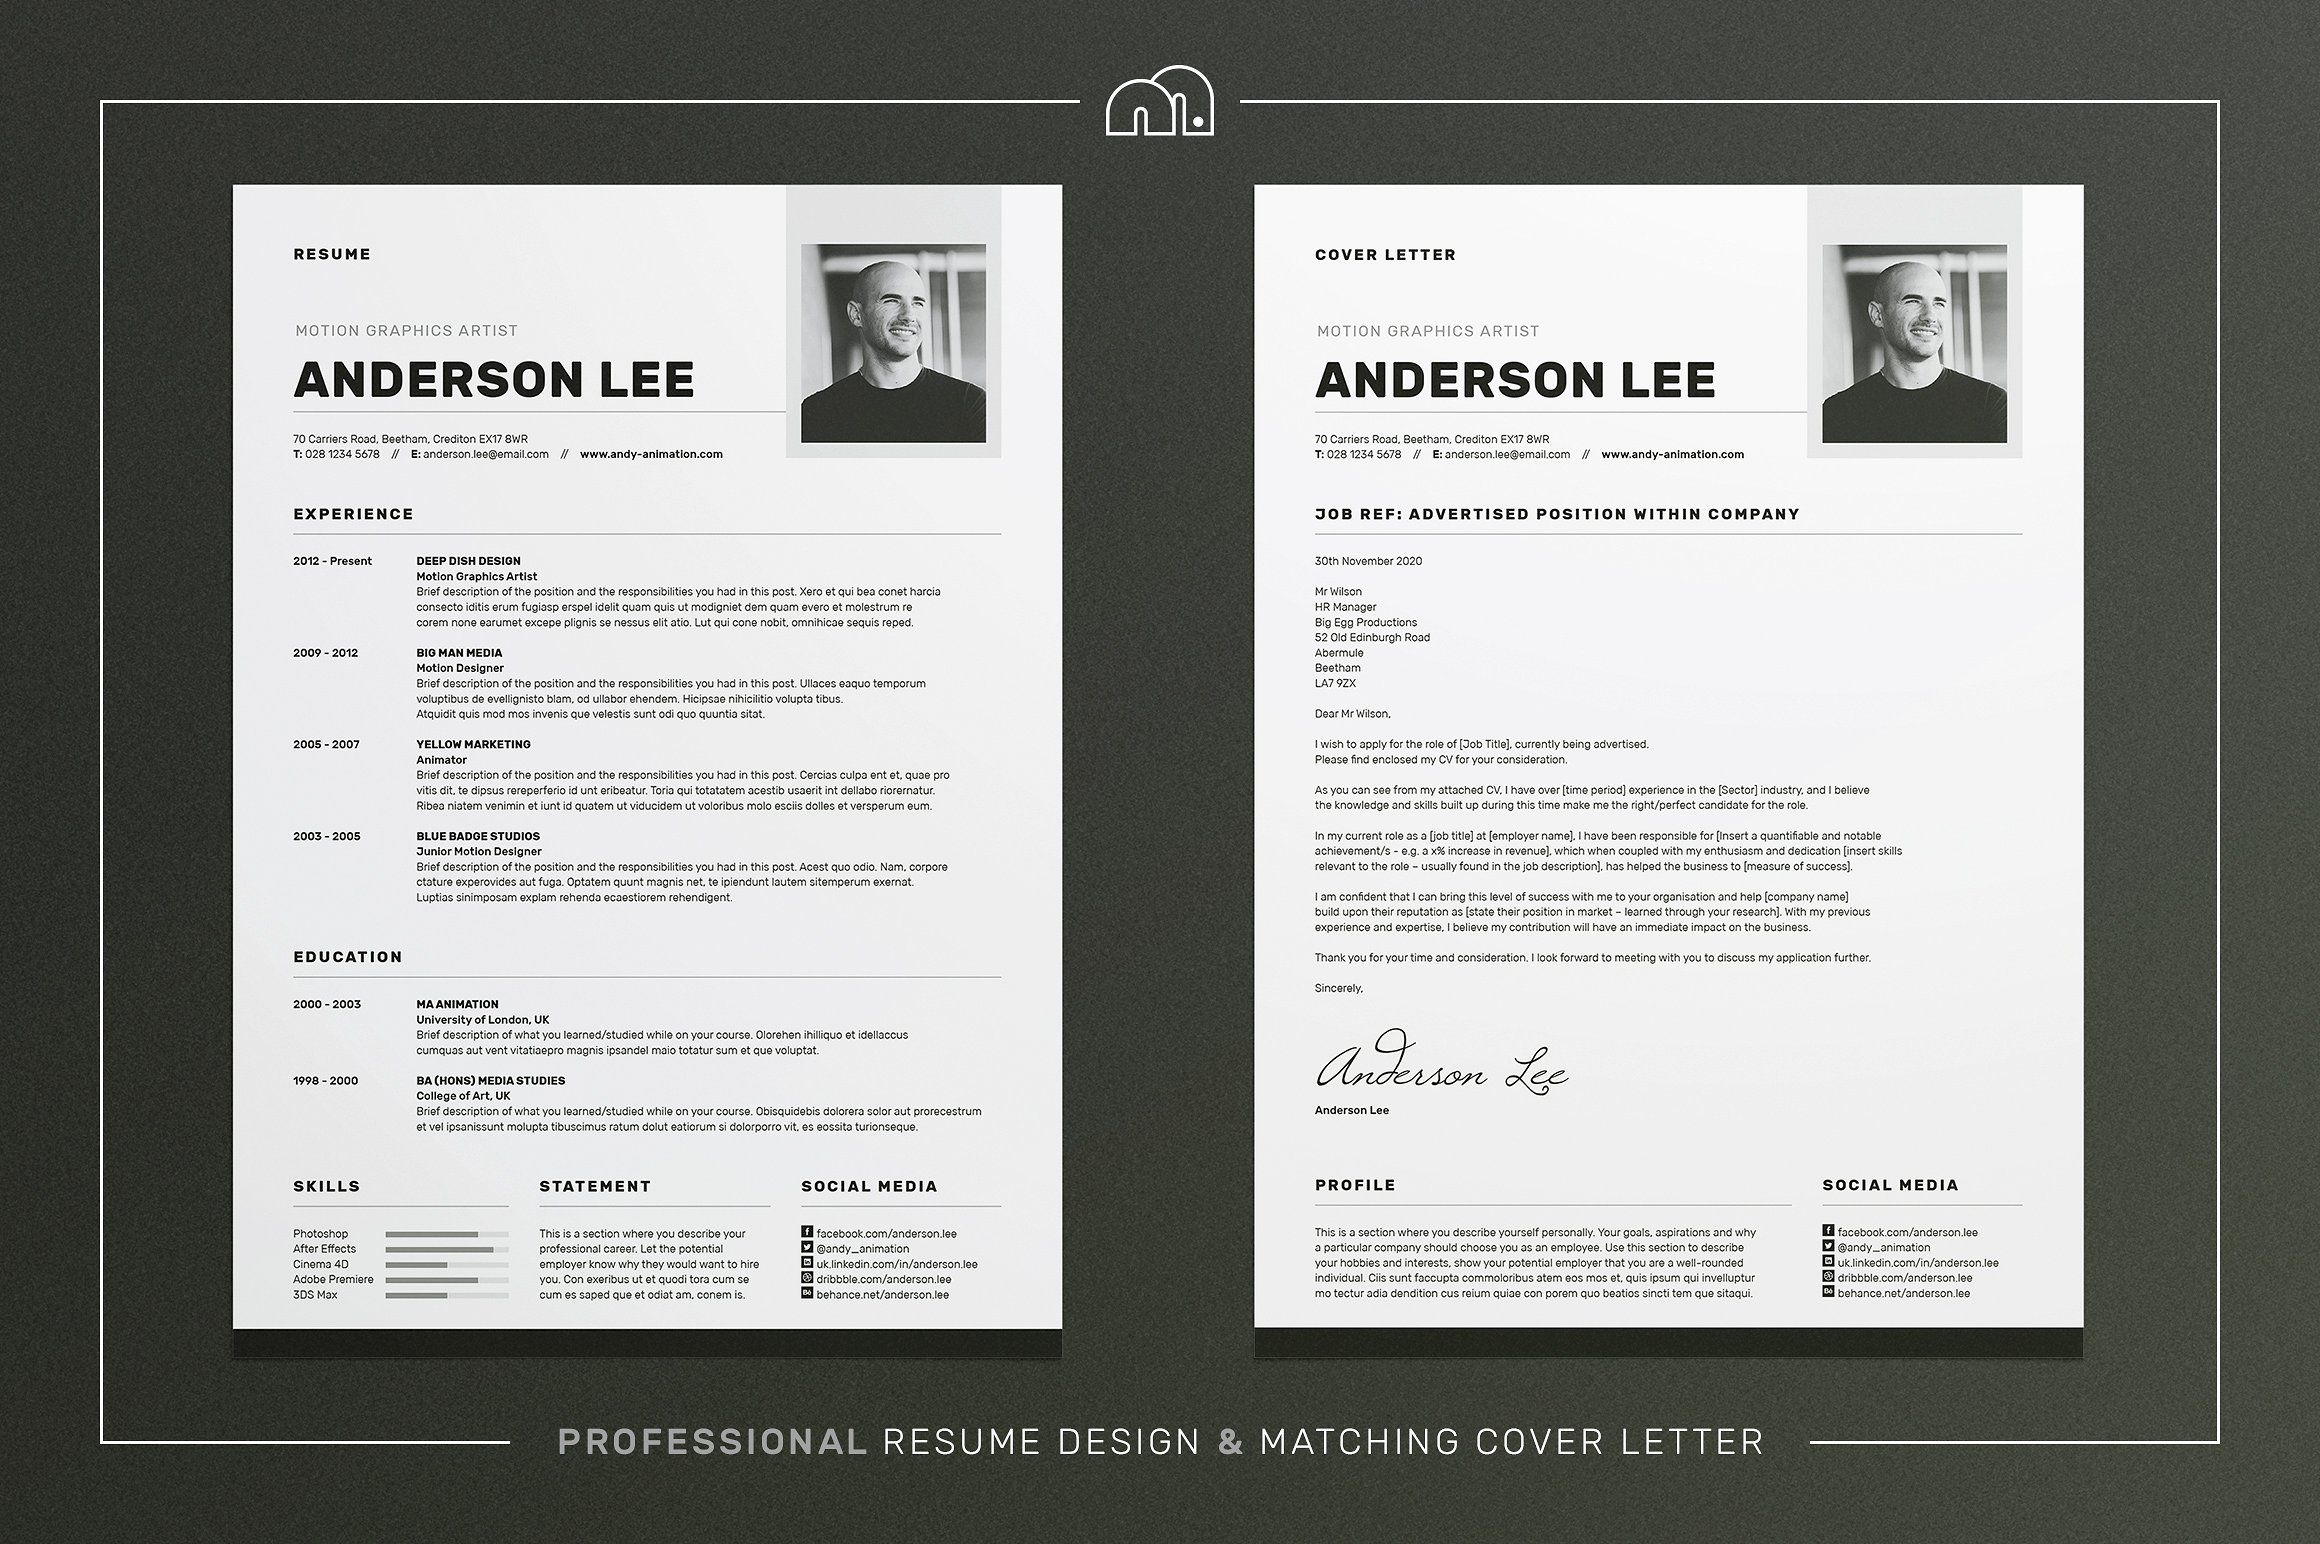 Resume Cv Anderson Resume Writing Examples Creative Resume Templates Unique Resume Template